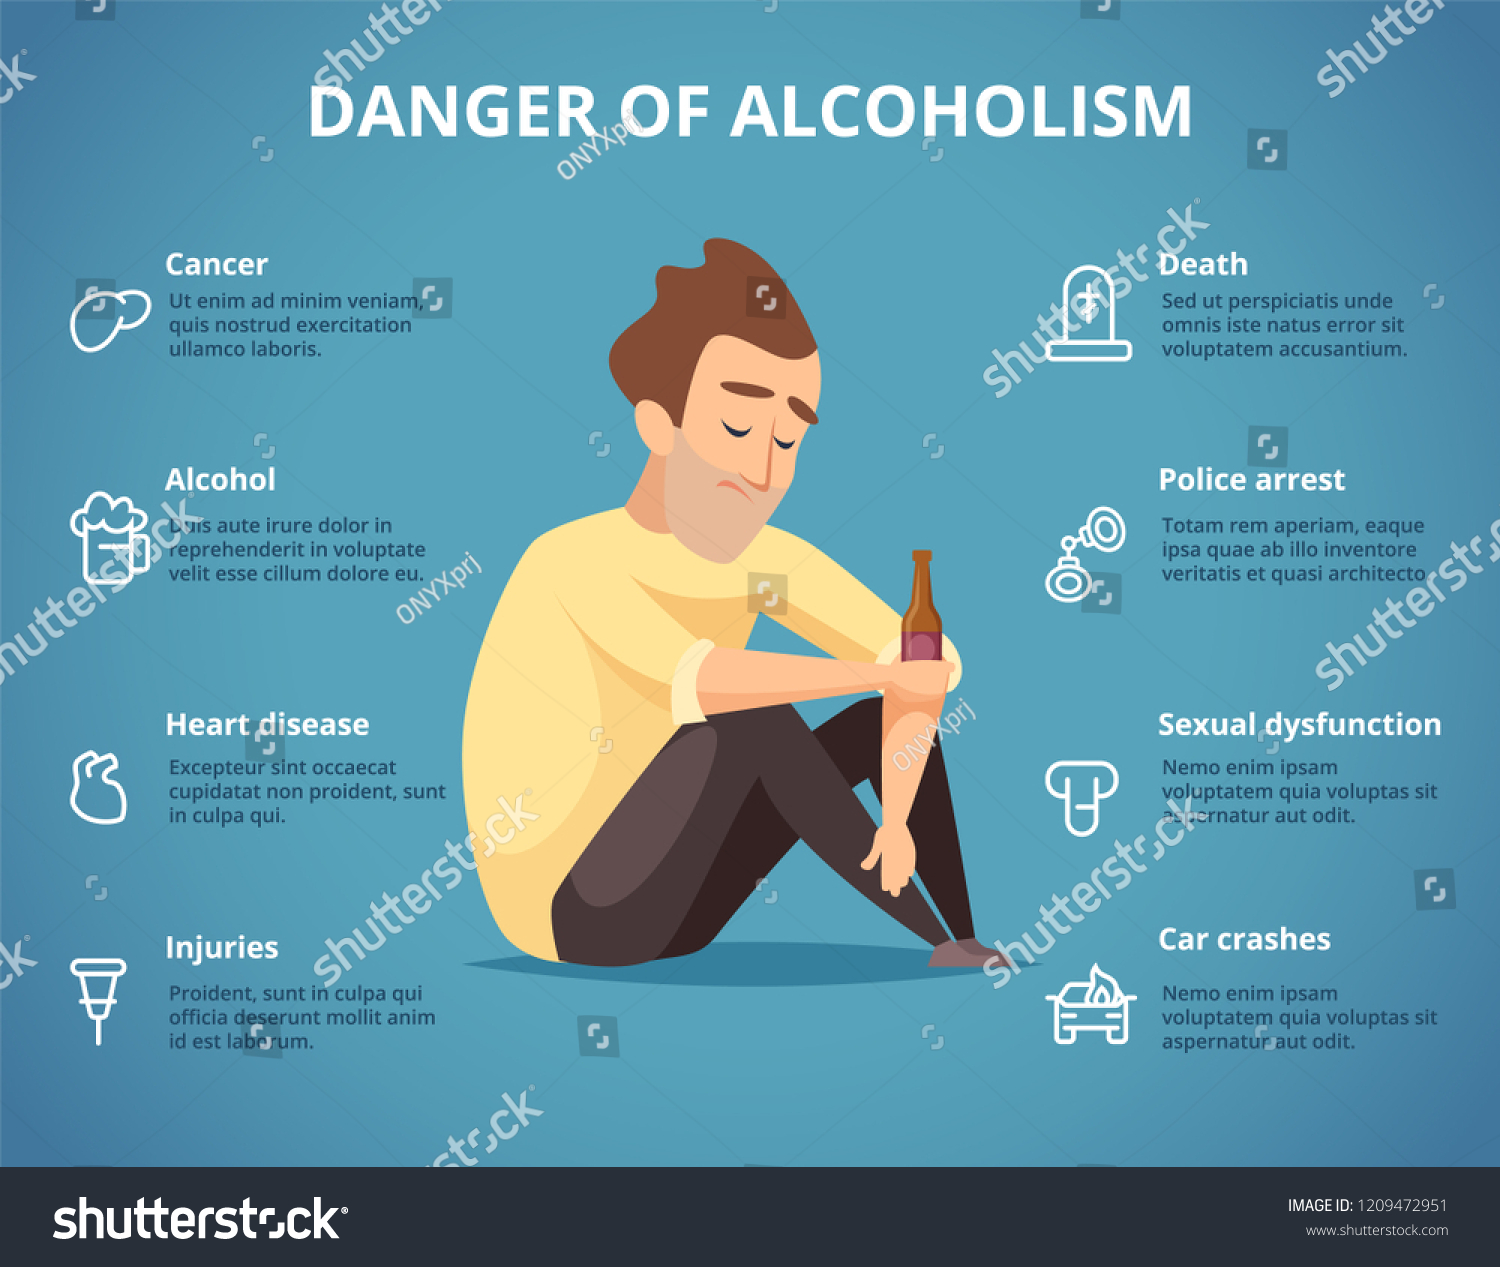 Alcoholism infographic. Alcohol, drugs addiction dangerous drunk driving car people social placard. Visualization addiction alcoholism, police arrest and death, cancer disease and sexual dysfunction